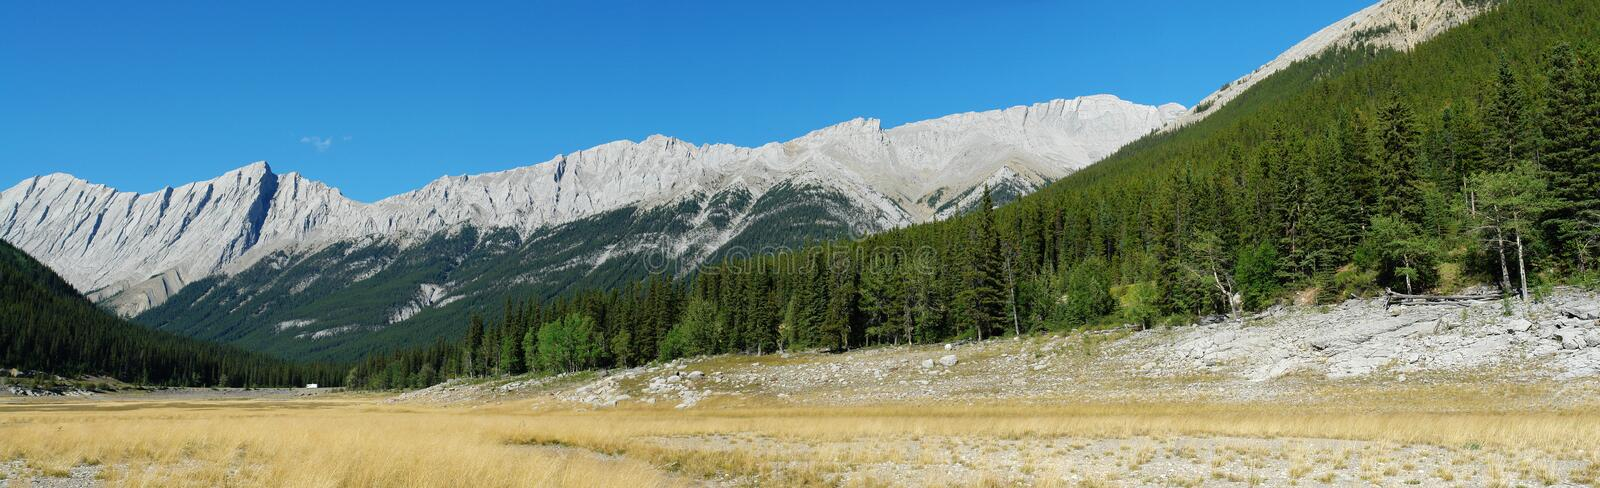 Mountains, forests and meadows. Summer panoramic view of canadian rocky mountains, forests and meadows at medicine lake area, jasper national park, alberta royalty free stock photography